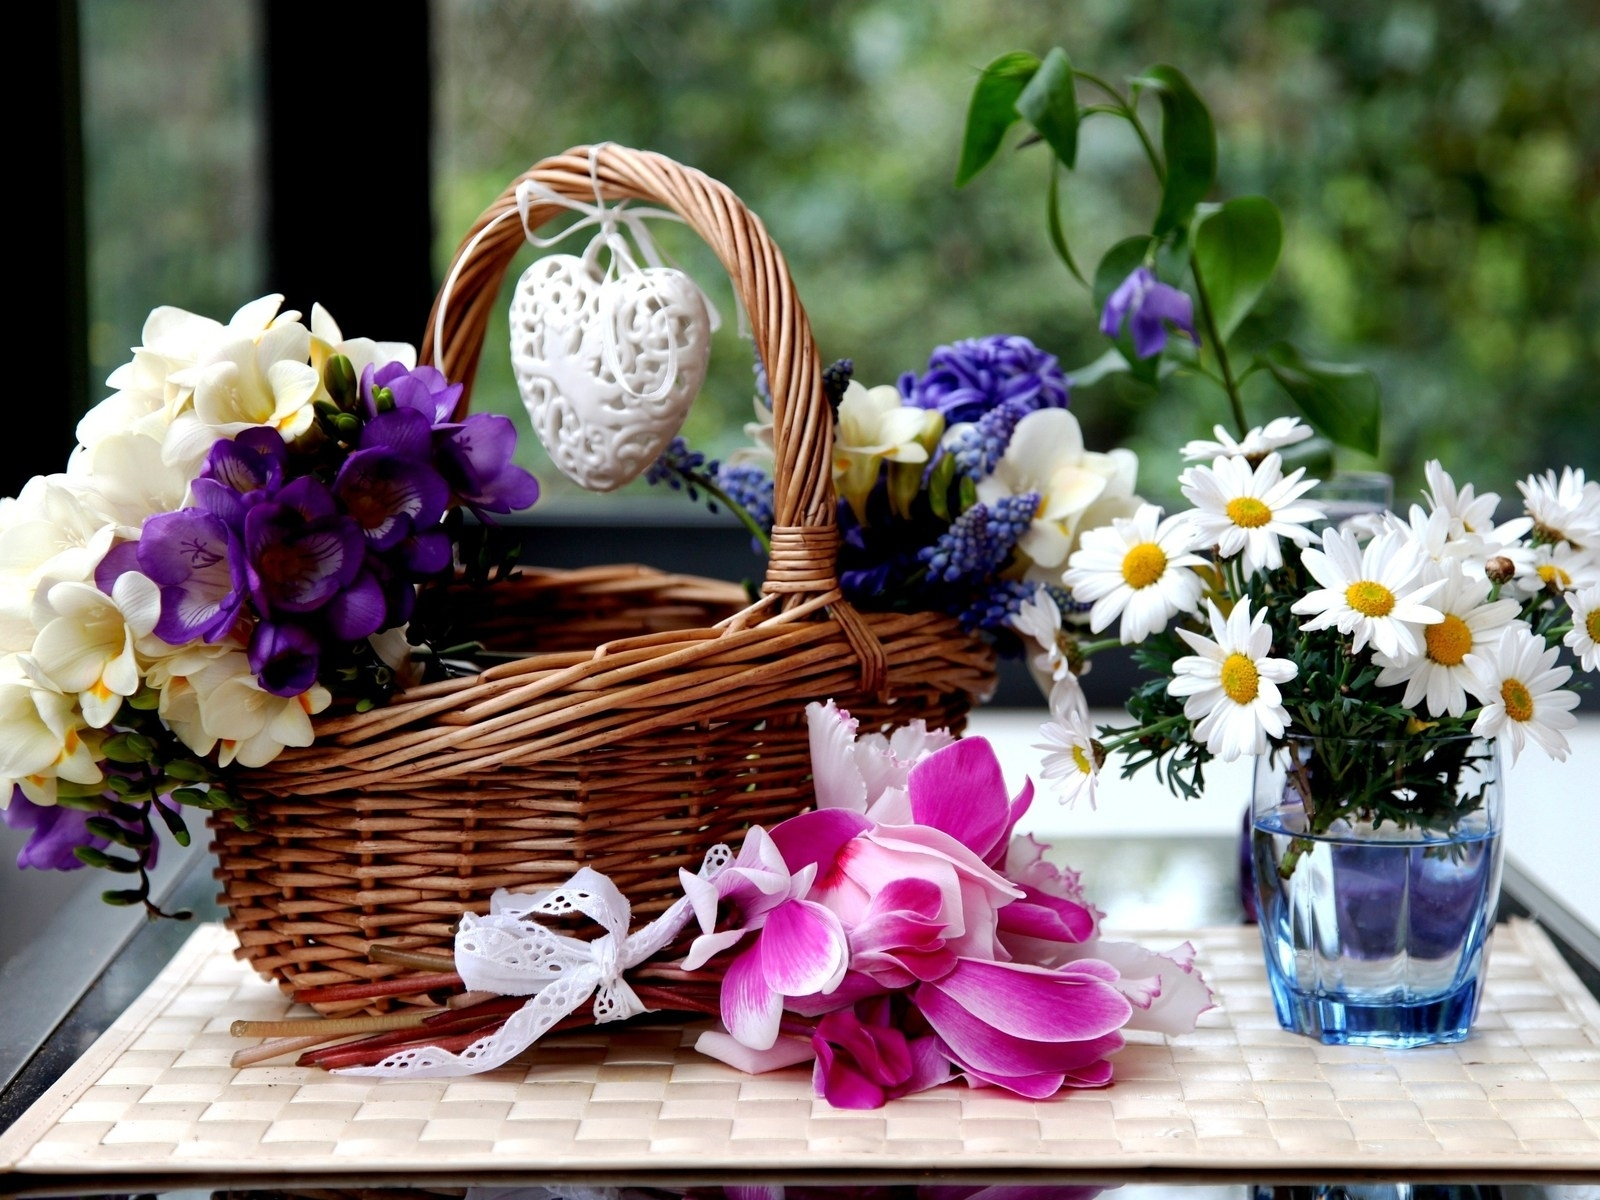 Images Of Flower Baskets : Beautiful flower wallpapers for you flowers basket wallpaper